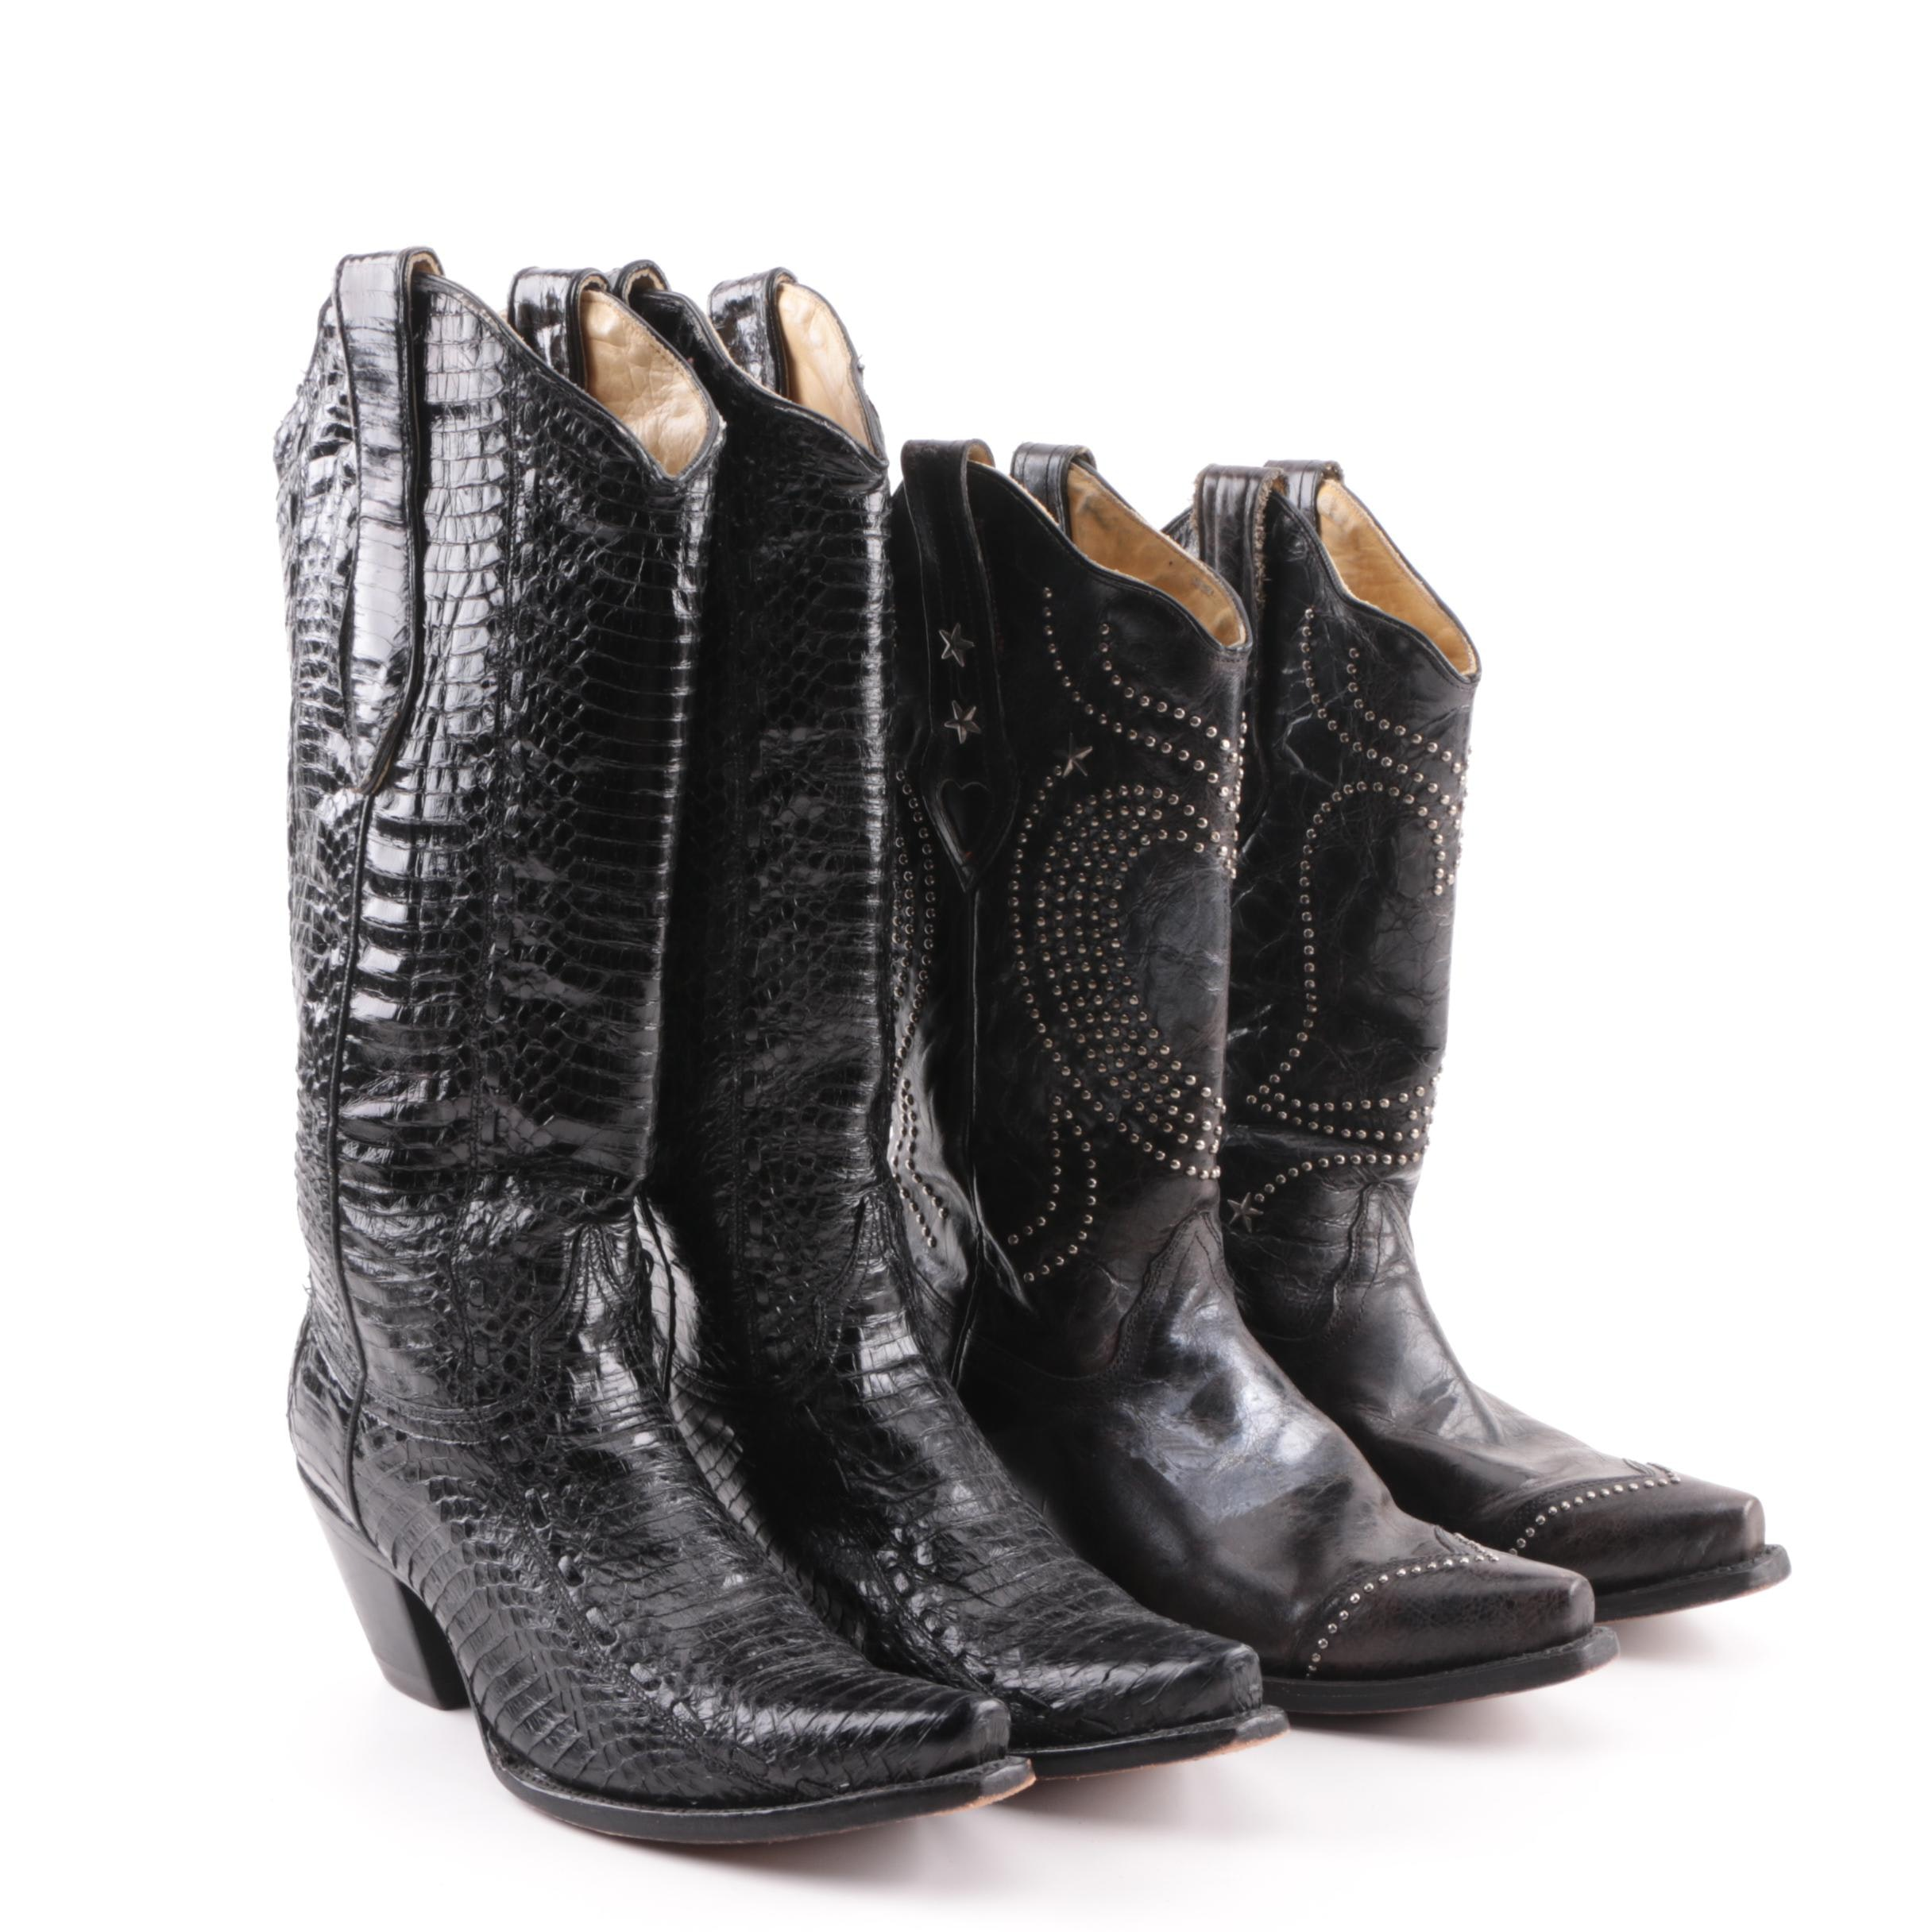 Women's Corral Leather and Python Cowboy Boots